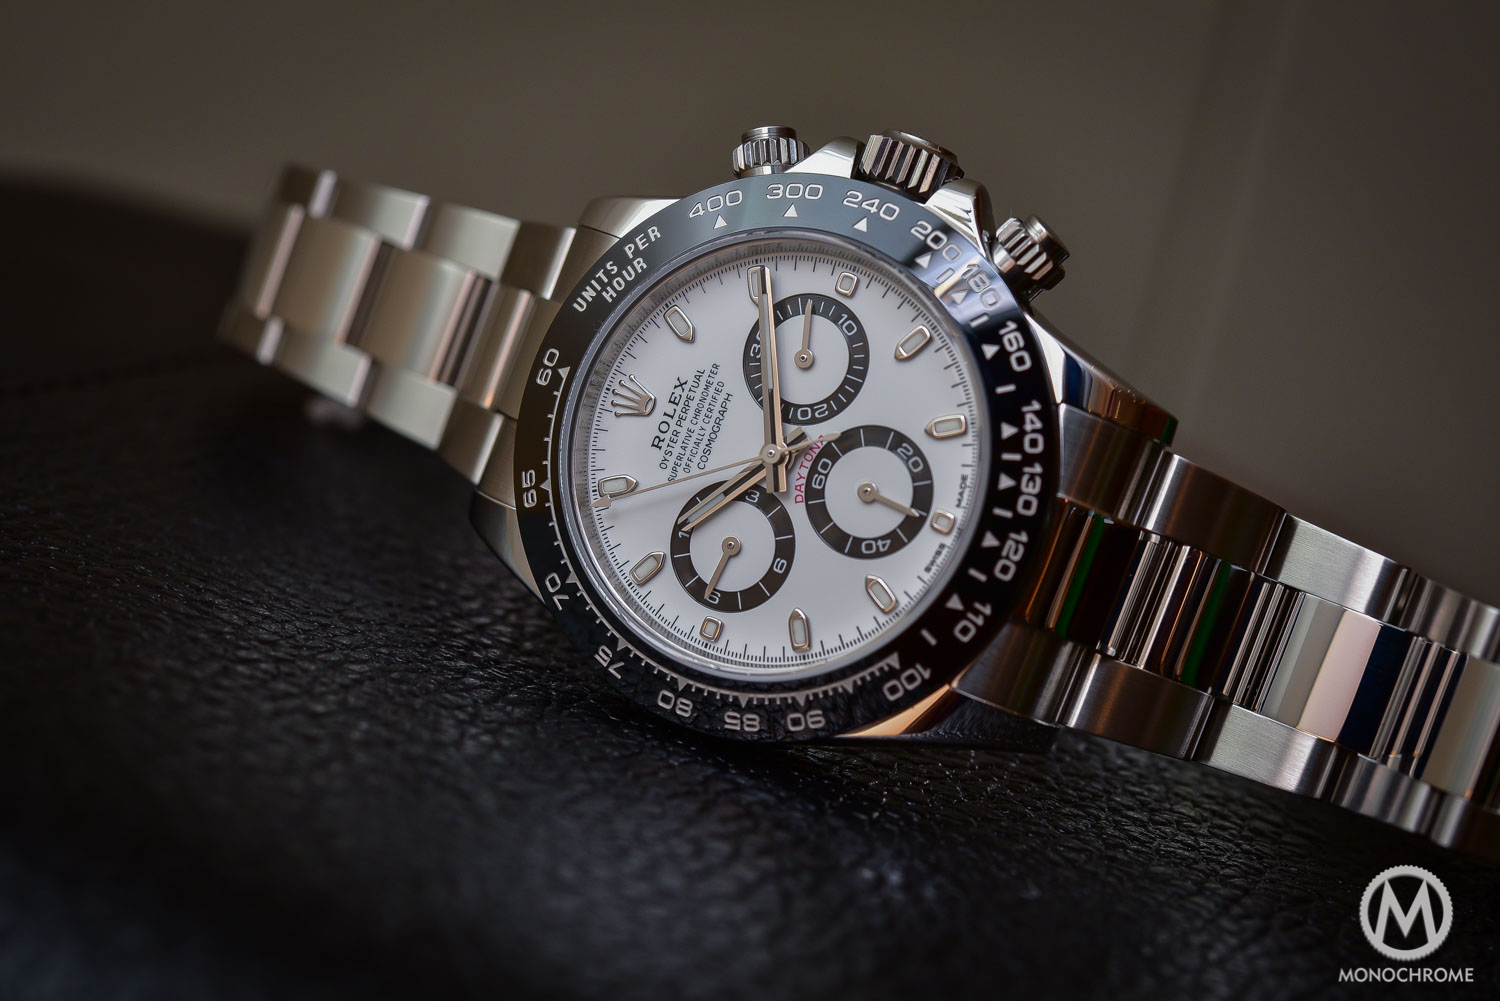 Rolex Daytona 116500LN in steel Cerachrom ceramic black bezel - 4